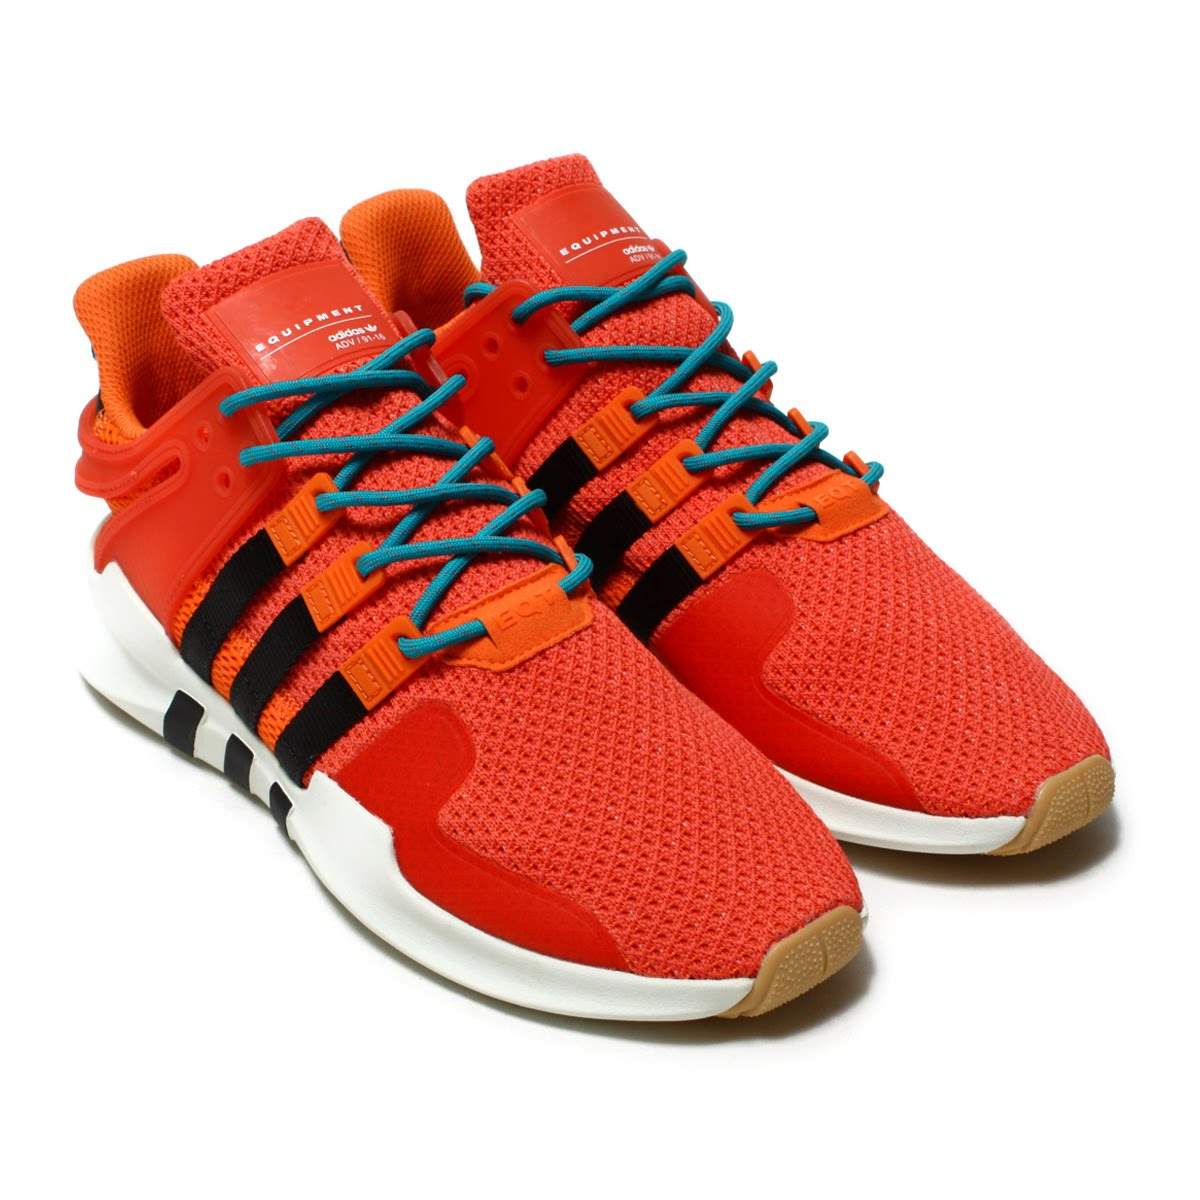 adidas Originals EQT SUPPORT ADV SUMMER (Adidas originals E cue tea support ADV summer) Trase OrangeWhite TintGum 18SS I